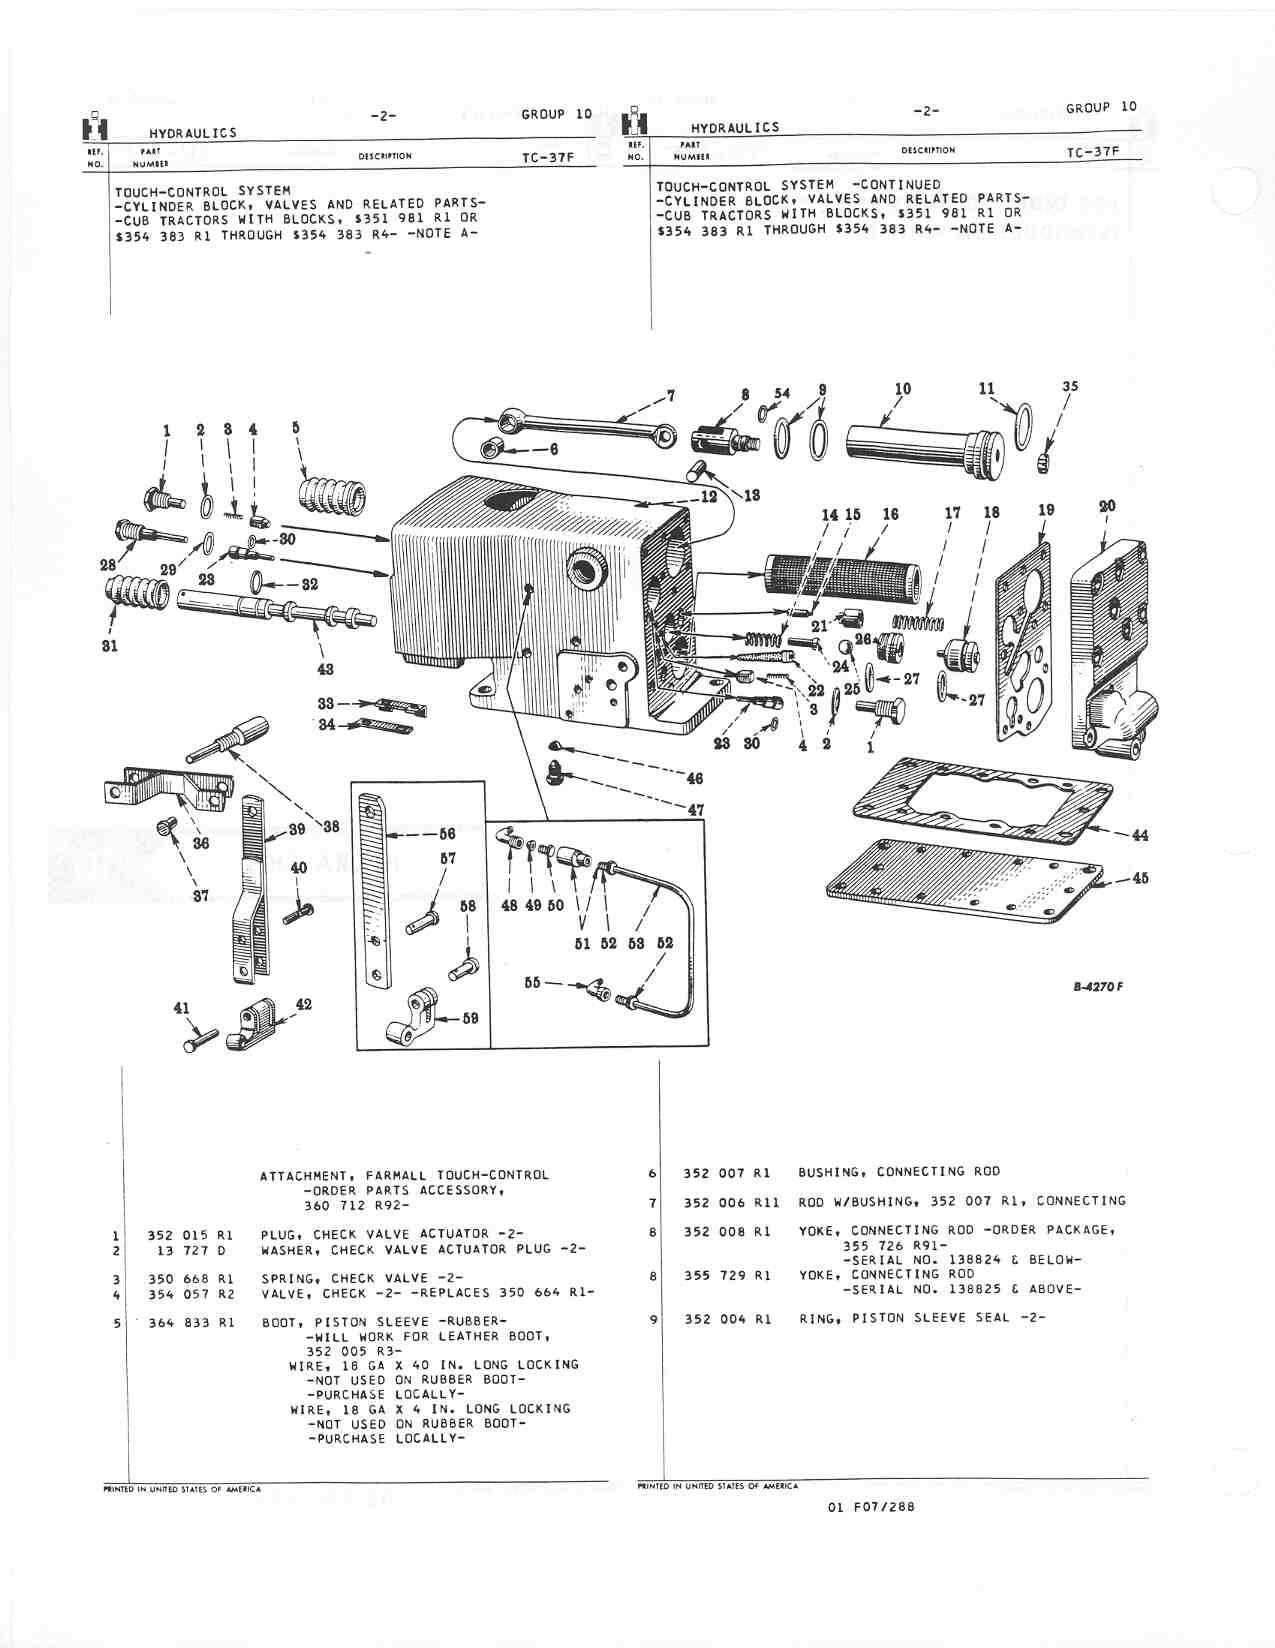 farmall cub wiring diagram 12v    farmall       cub    final drive part    diagram       wiring       diagram    database     farmall       cub    final drive part    diagram       wiring       diagram    database